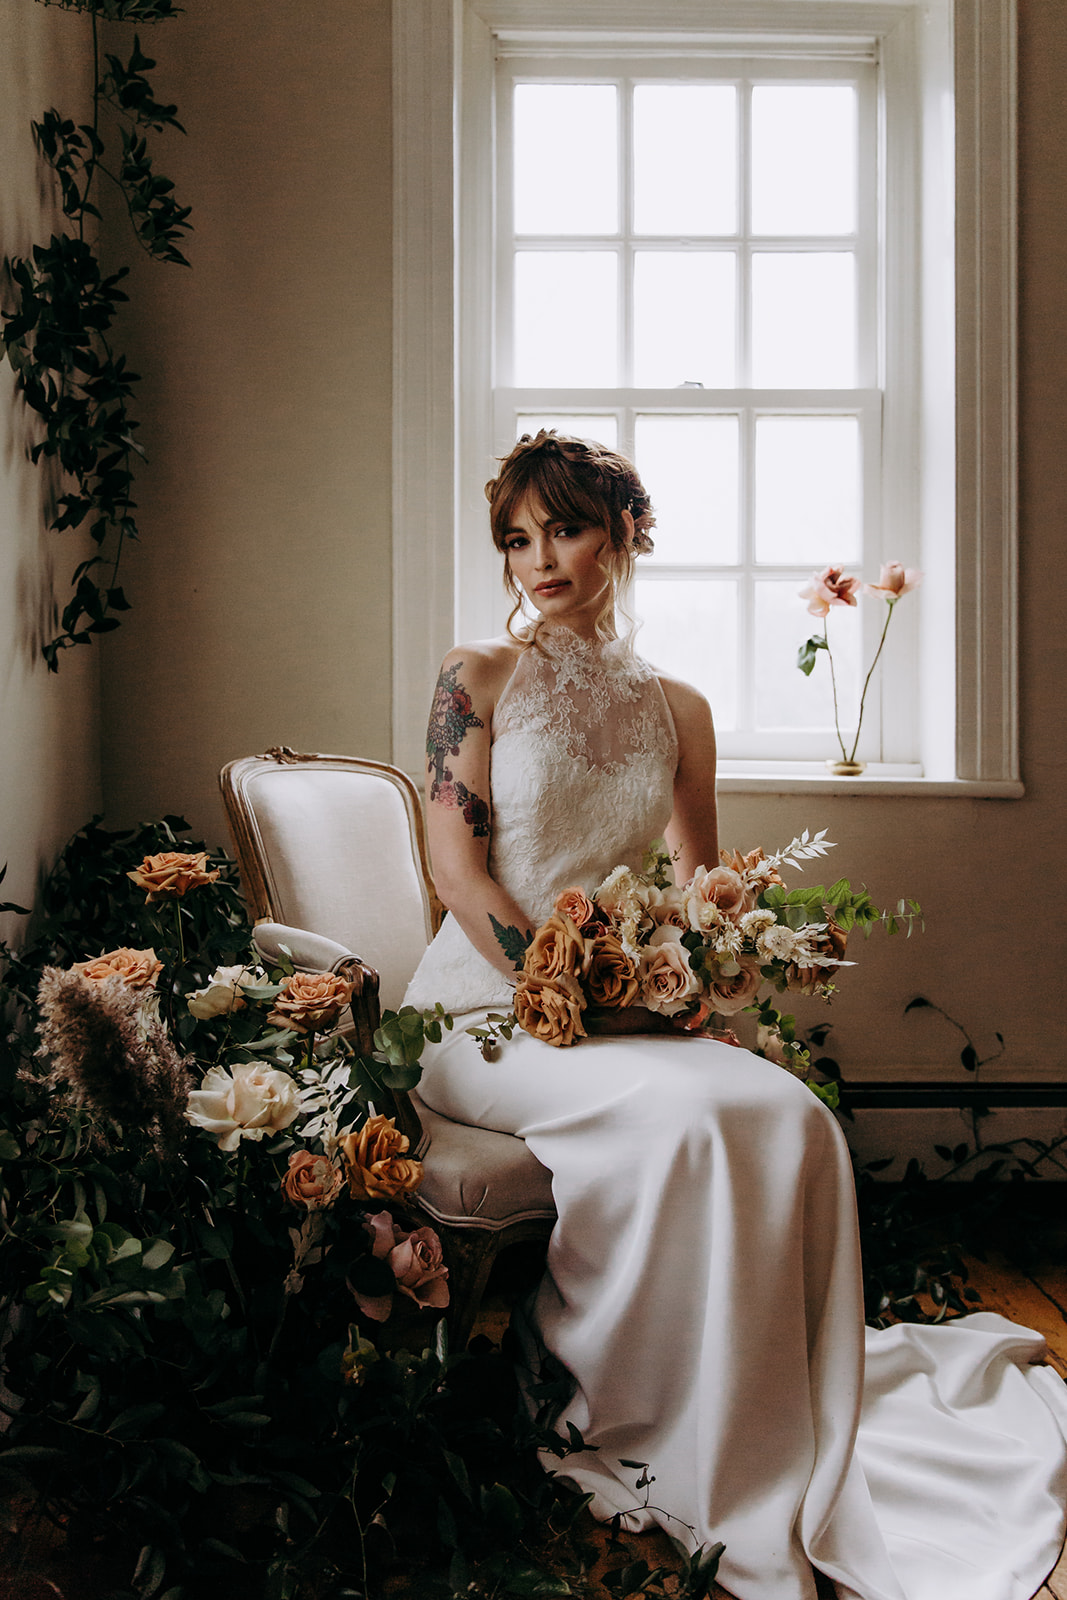 lea-ann-belter-bridal-editorial-windrift-hall-wedding-photographer-new-york-123.jpg